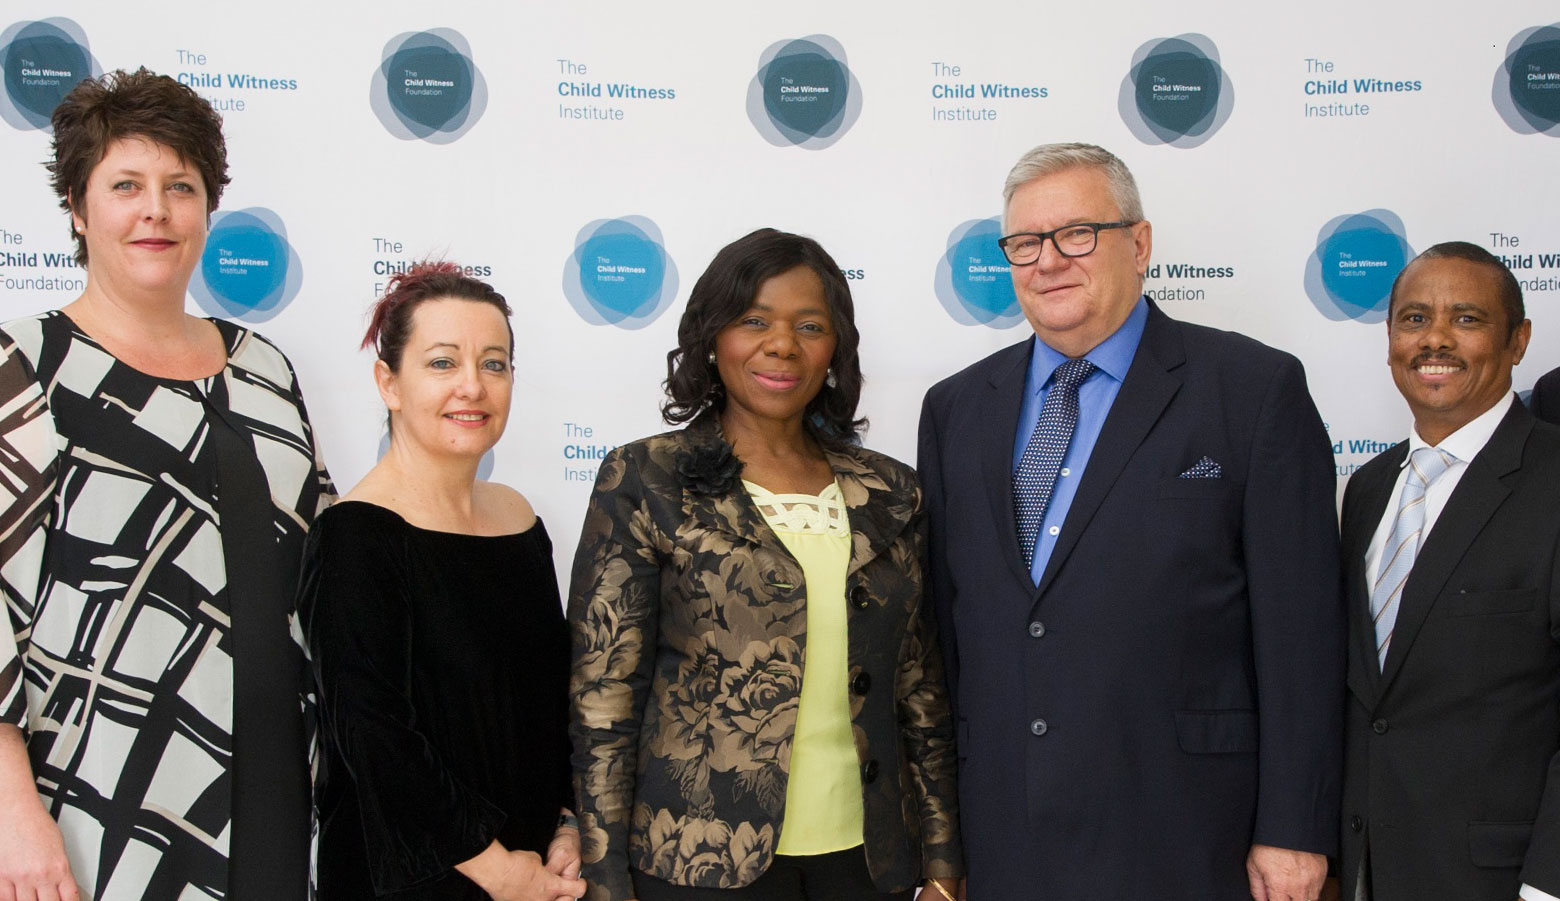 Karen Hollely – COO Child Witness Institute, Dr Karen Müller – CEO Child Witness Institute, Adv Thuli Madonsela, Danie Kok – Development Head for Child Witness Foundation, Tim Scholtz – COO Child Witness Foundation